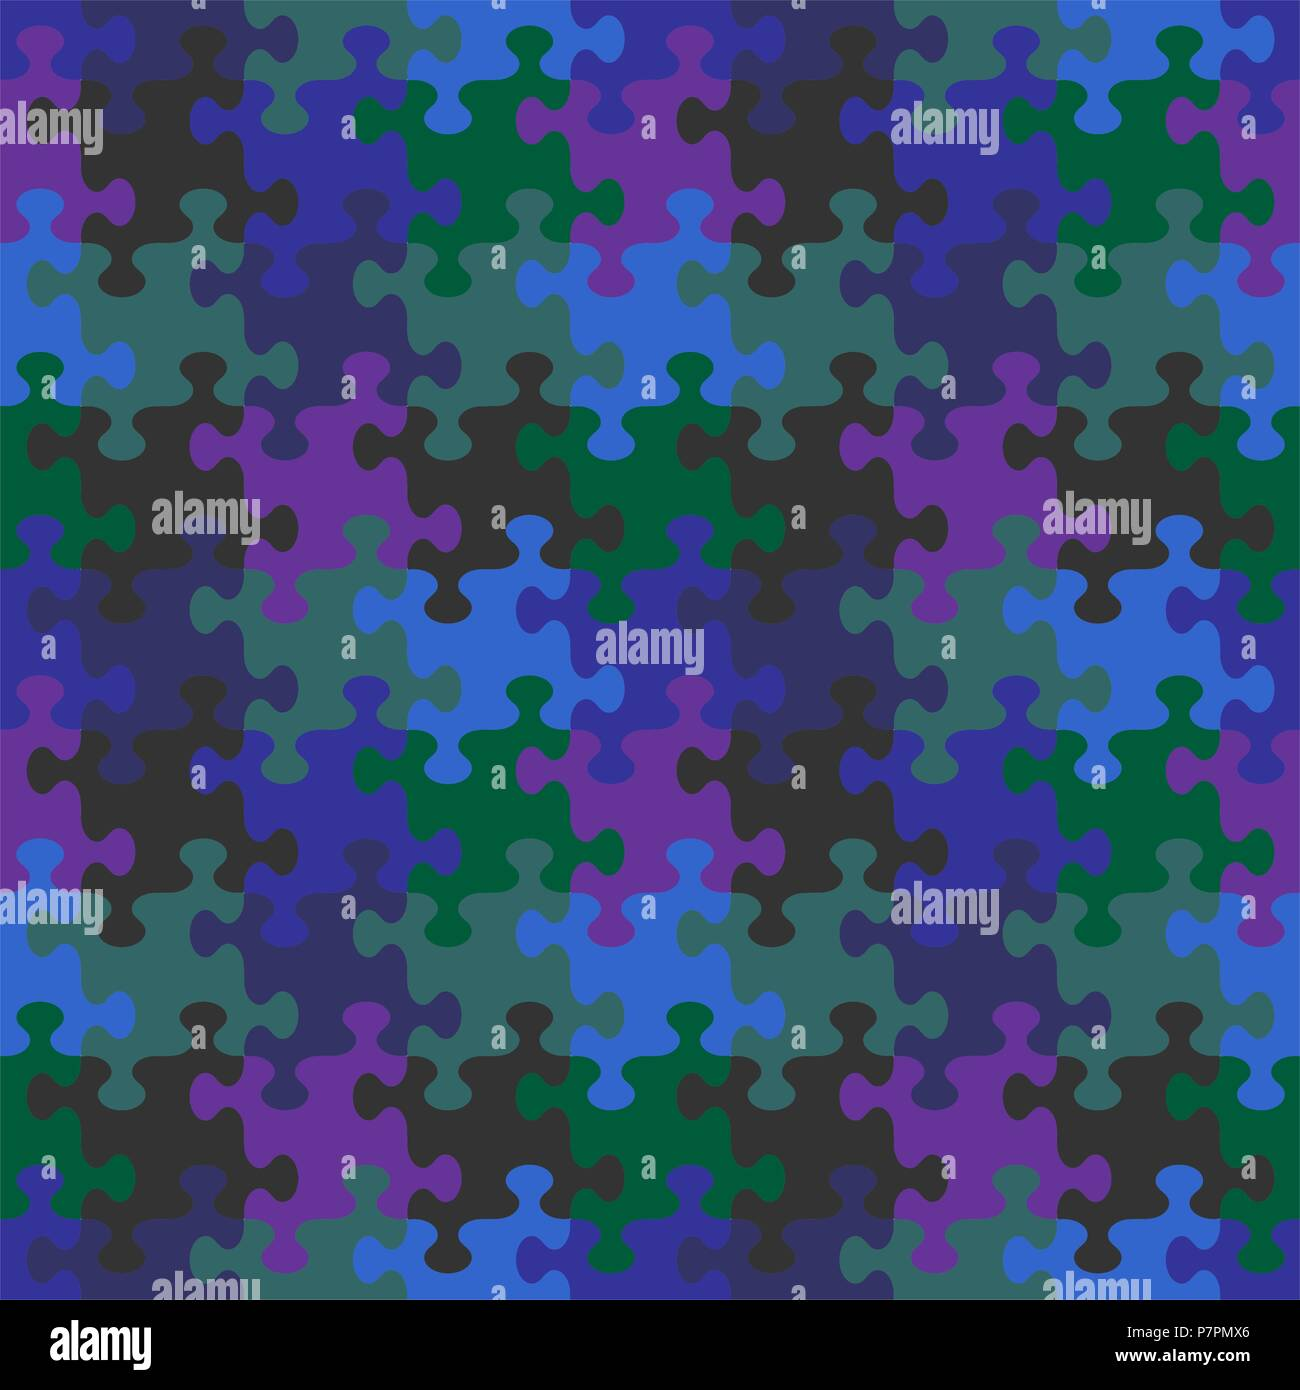 Seamless You See 4 Tiles Jigsaw Puzzle Pattern Background Print Swatch Or Wallpaper With Whimsically Shaped Pieces Of Dark Night Sky Colors